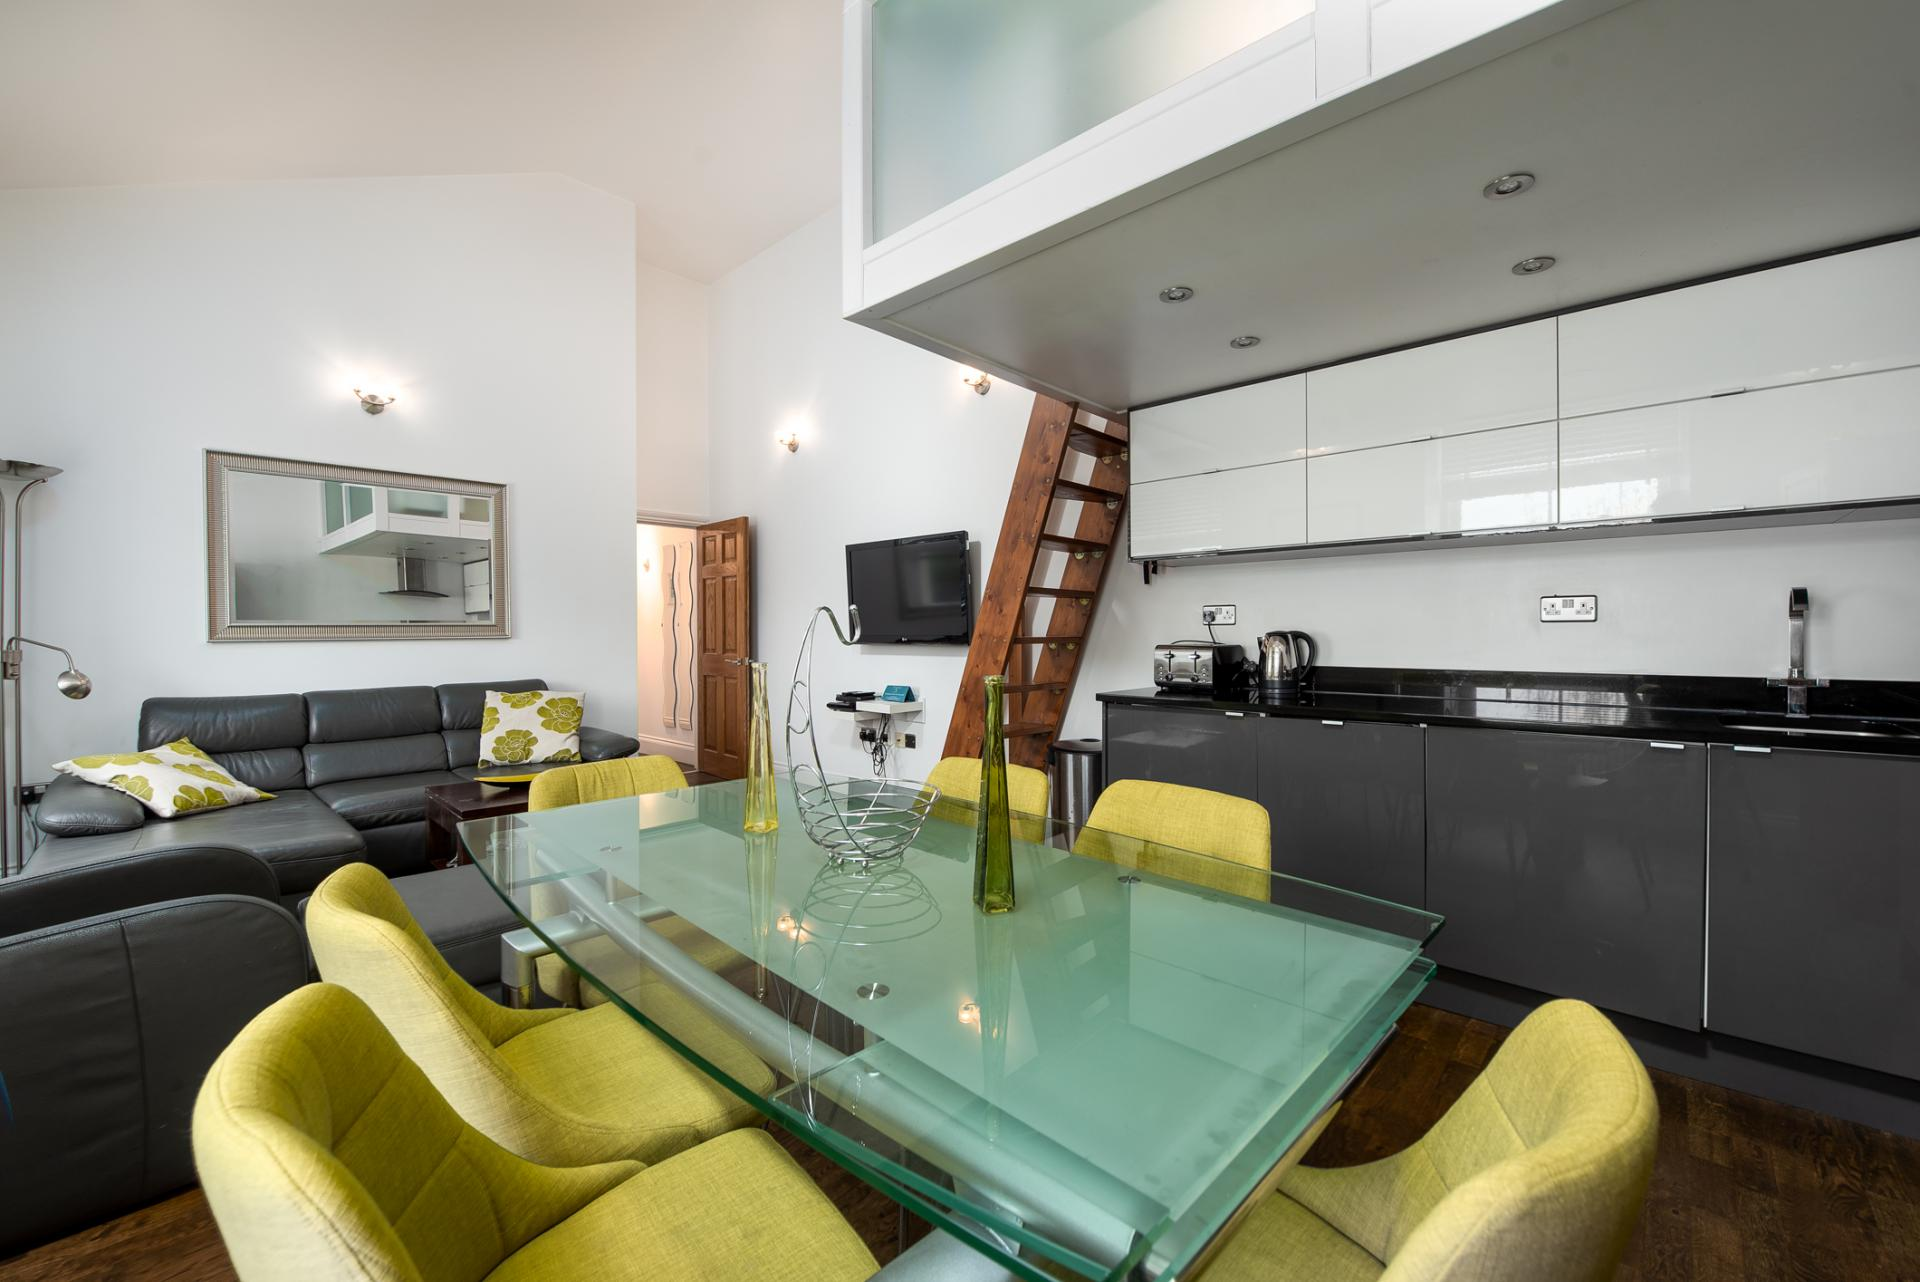 Dining area at Chelsea Green Apartments, Chelsea, London